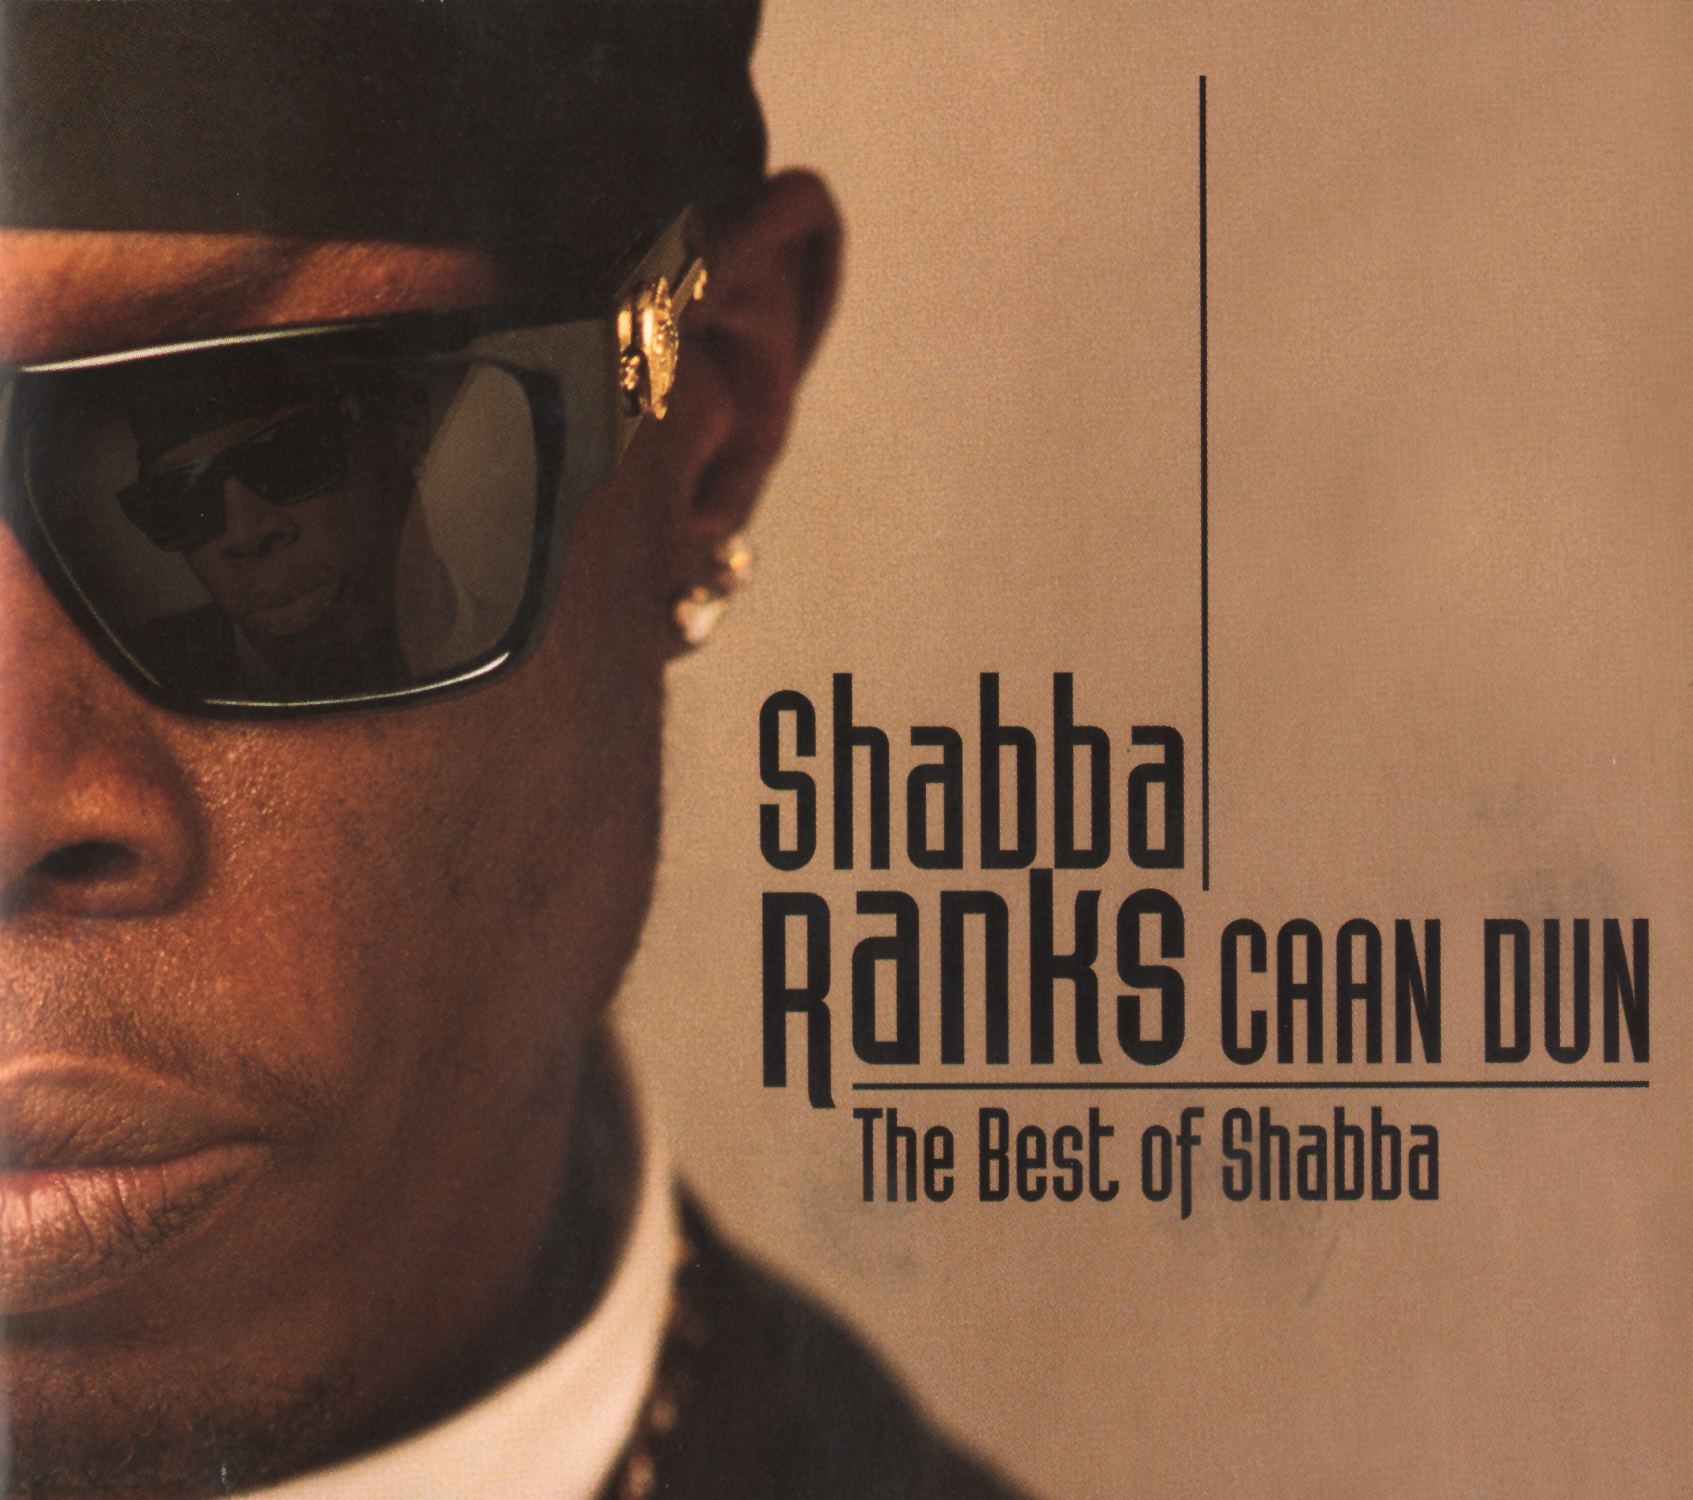 Shabba Ranks Caan Dun The Best Of Shabba Vp Records